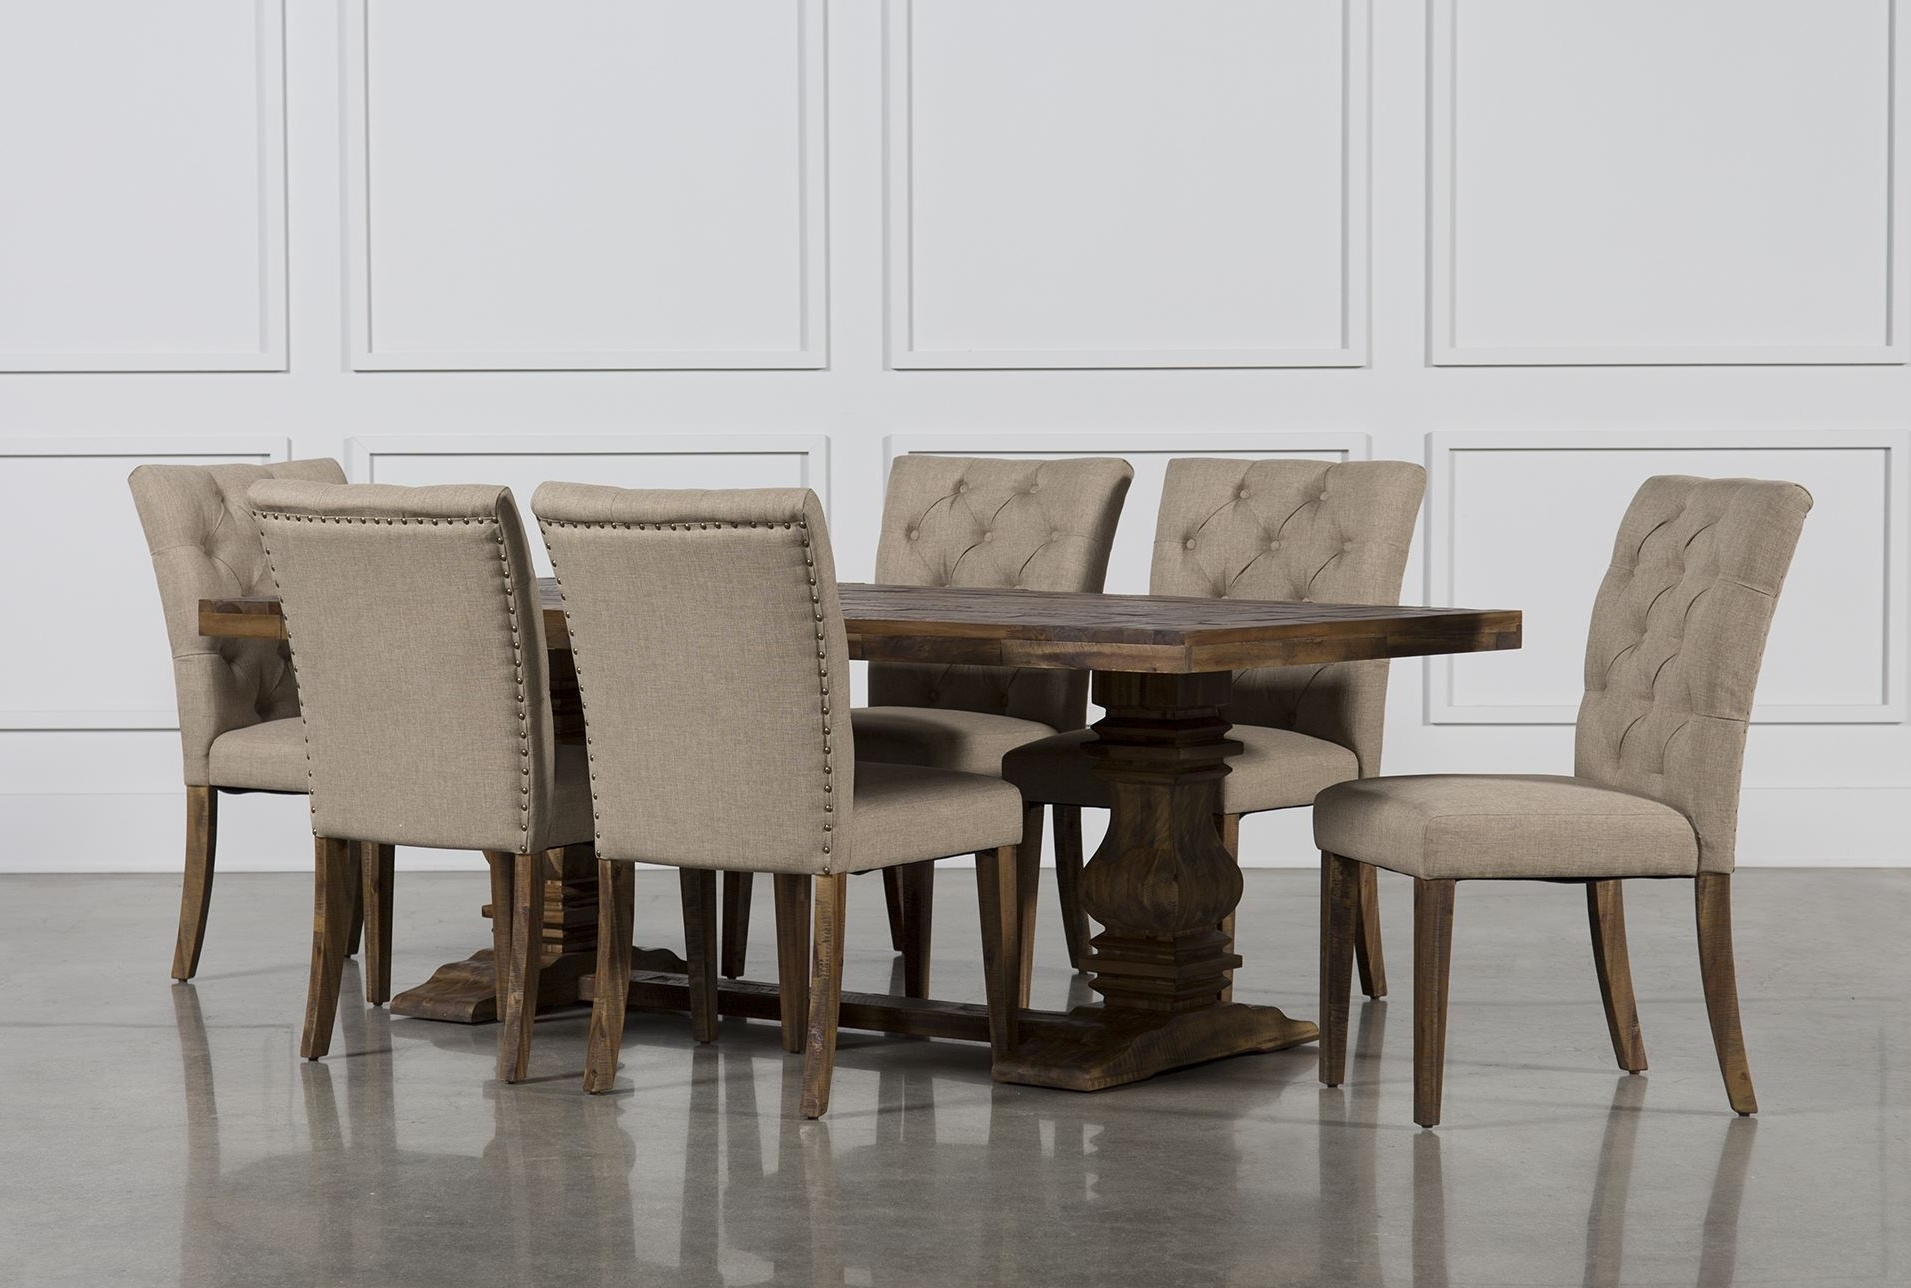 Partridge Throughout Most Recent Caira 7 Piece Rectangular Dining Sets With Upholstered Side Chairs (View 3 of 25)